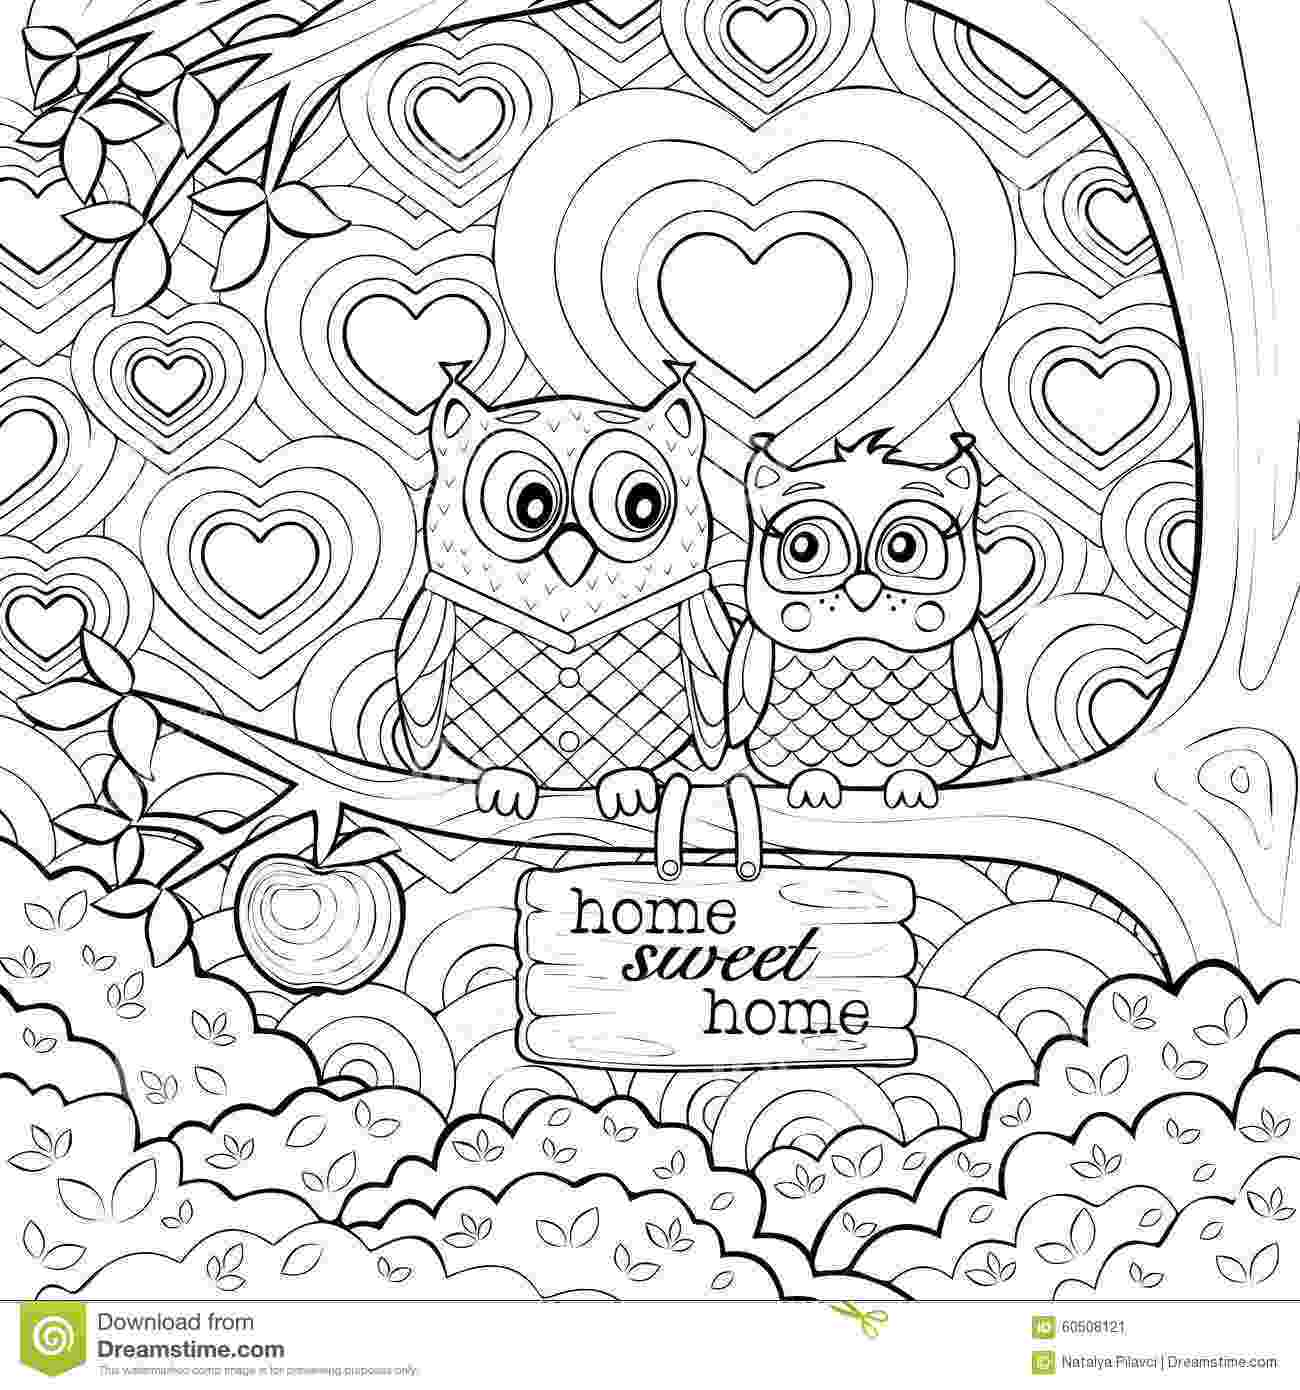 colouring therapy patterns art therapy coloring pages to download and print for free patterns colouring therapy